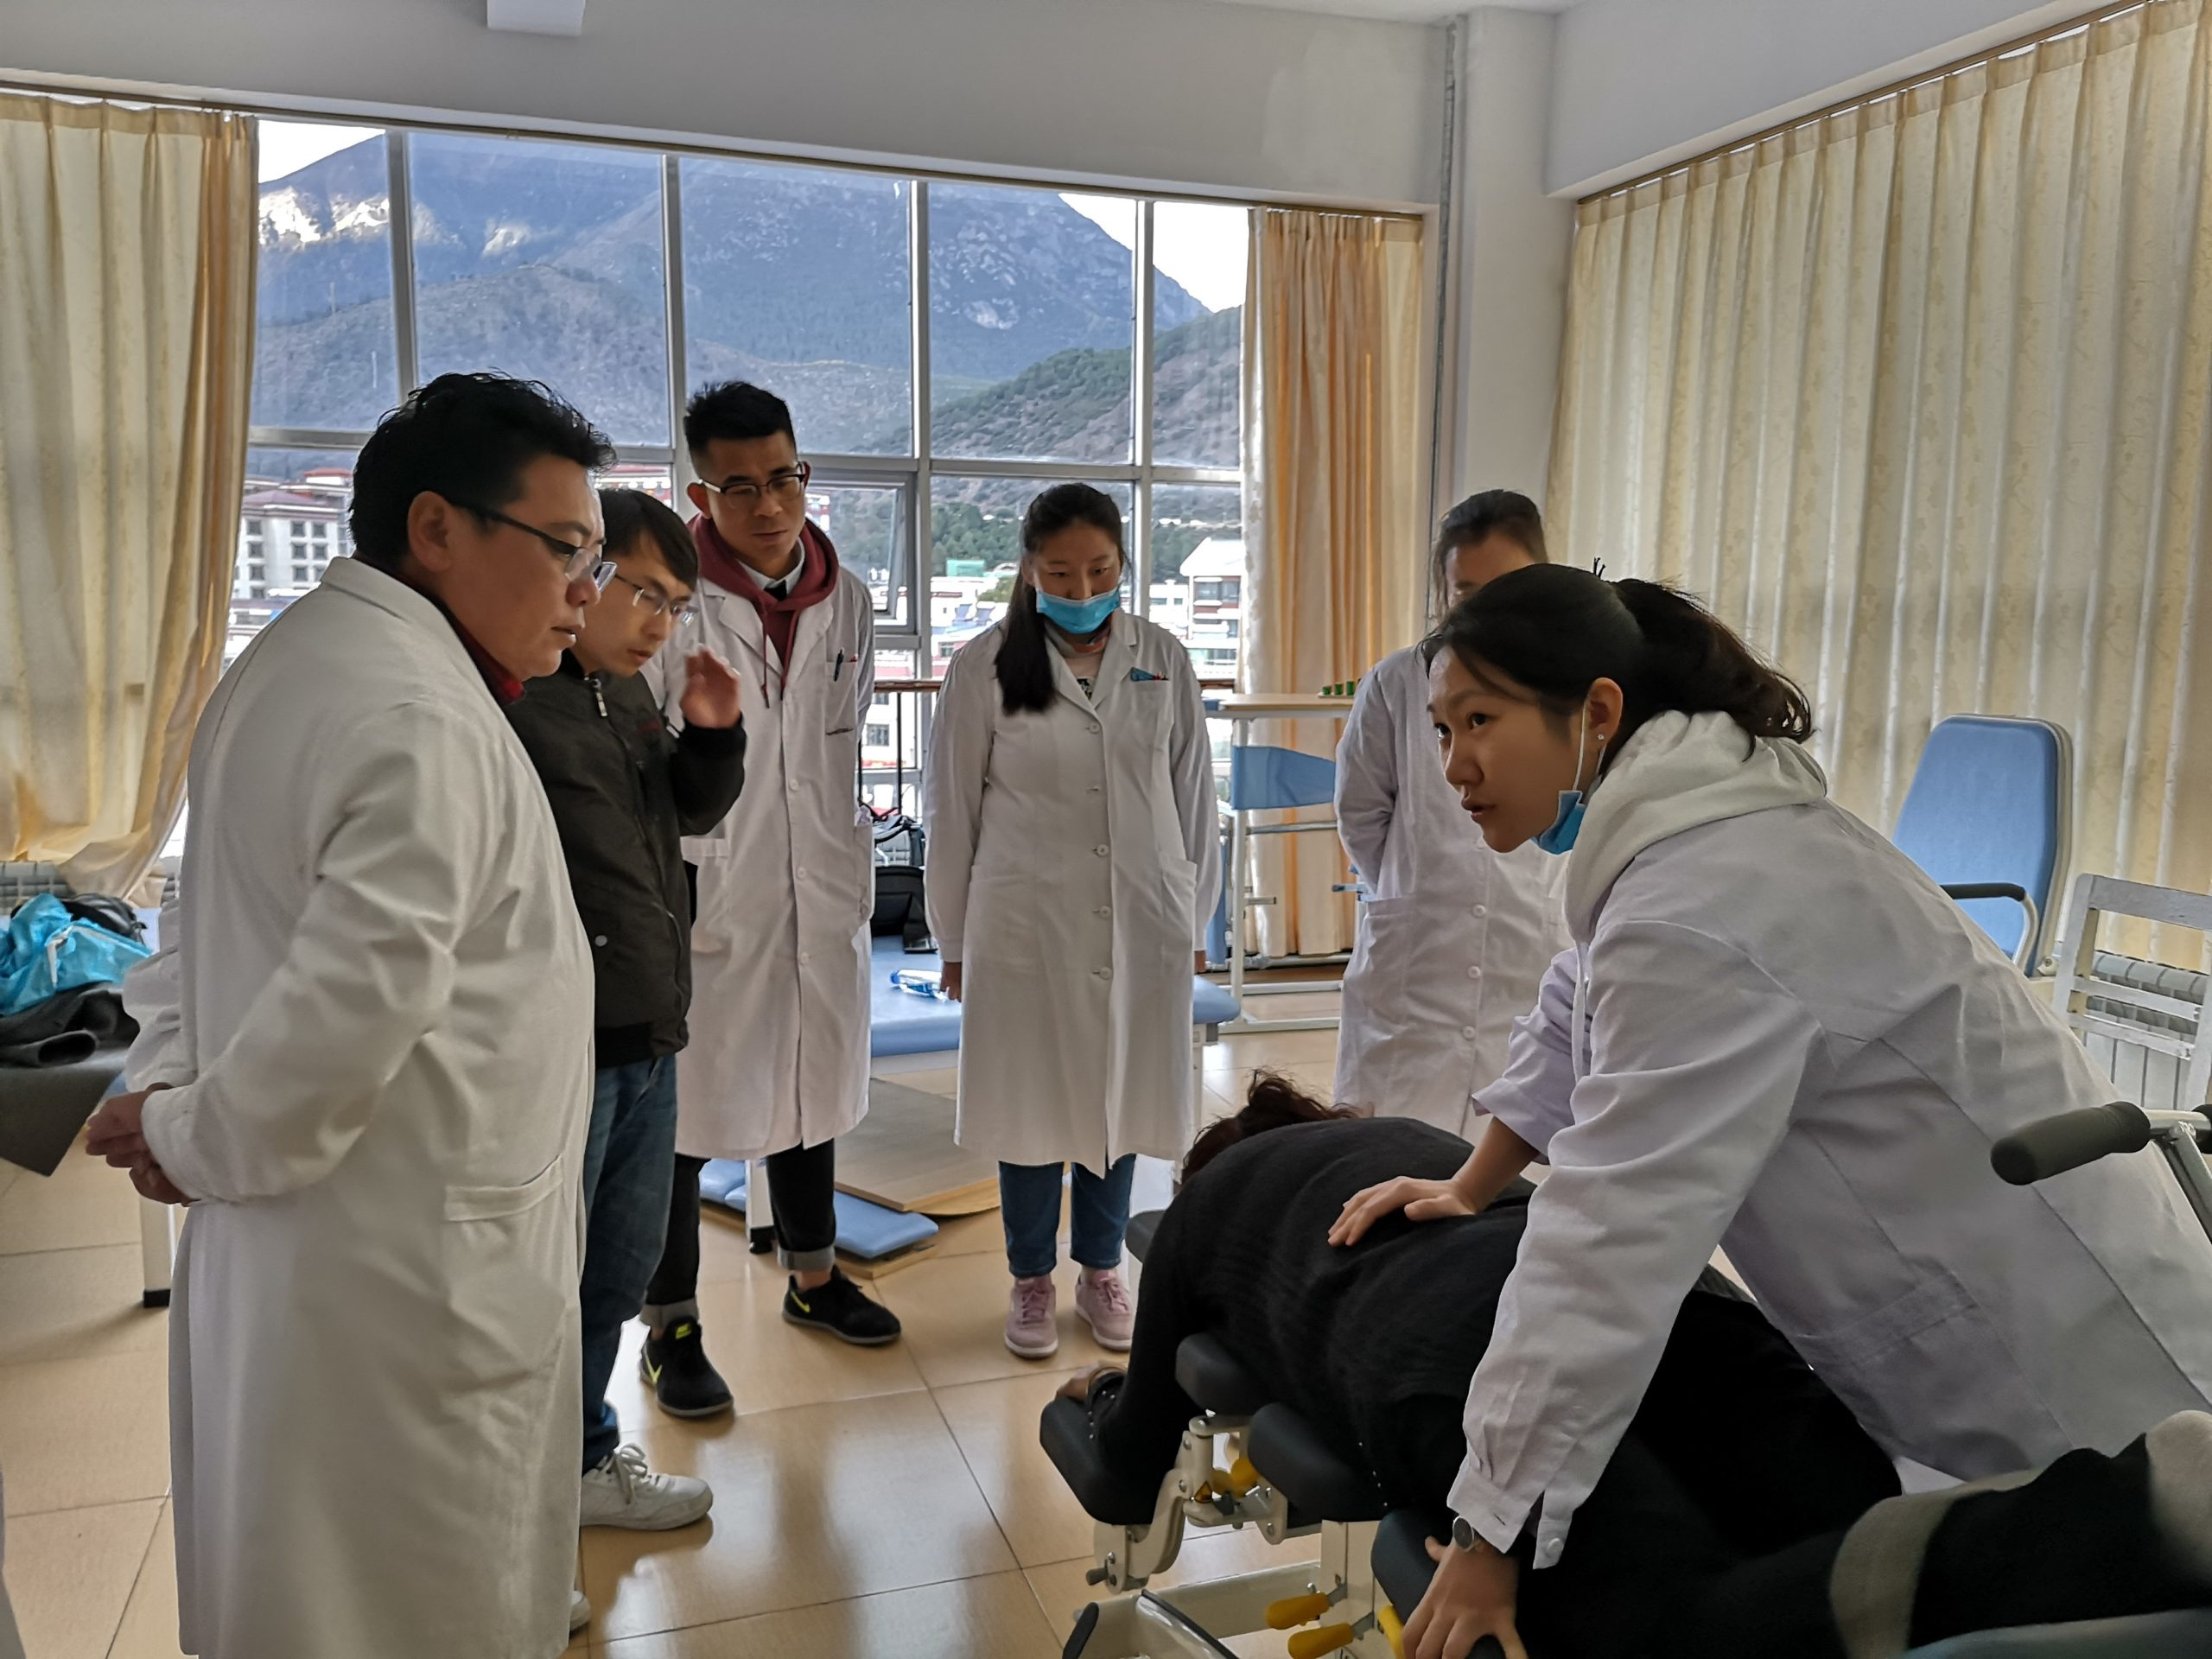 China – Treating 10-20 patients a day without fatigue